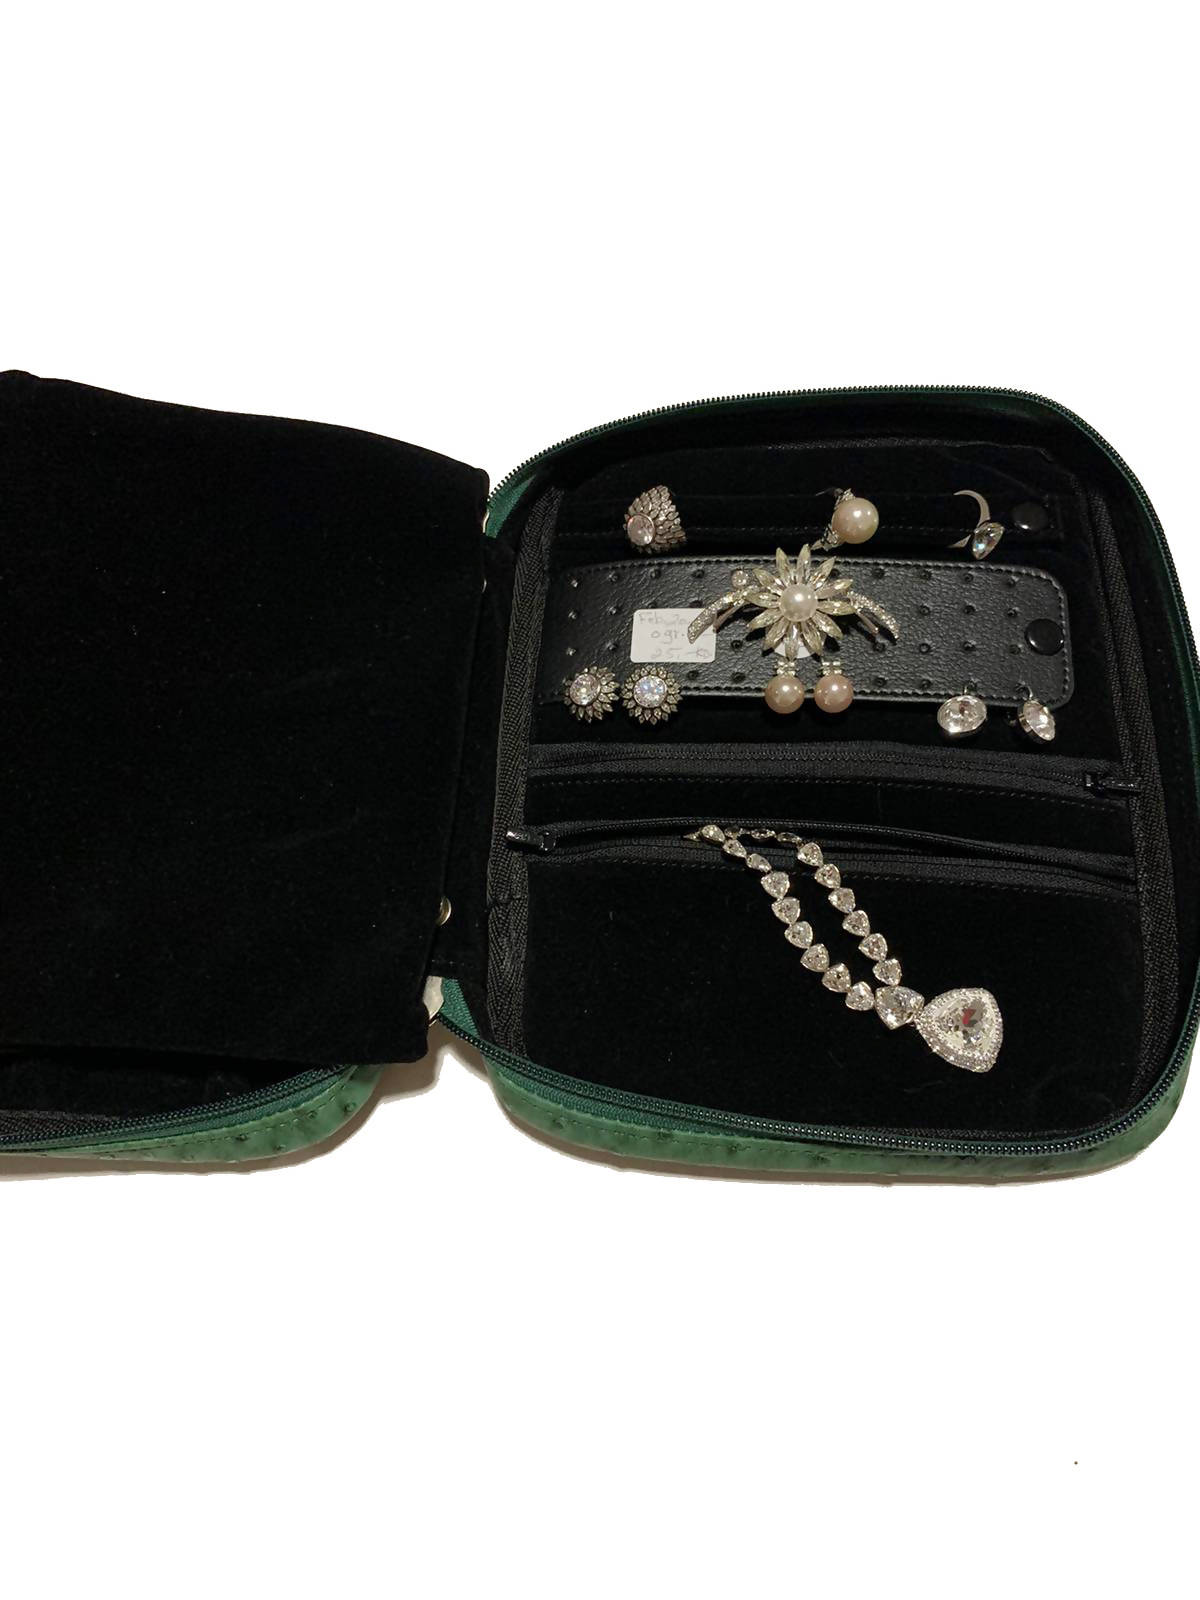 Large Travel Jewelry Case